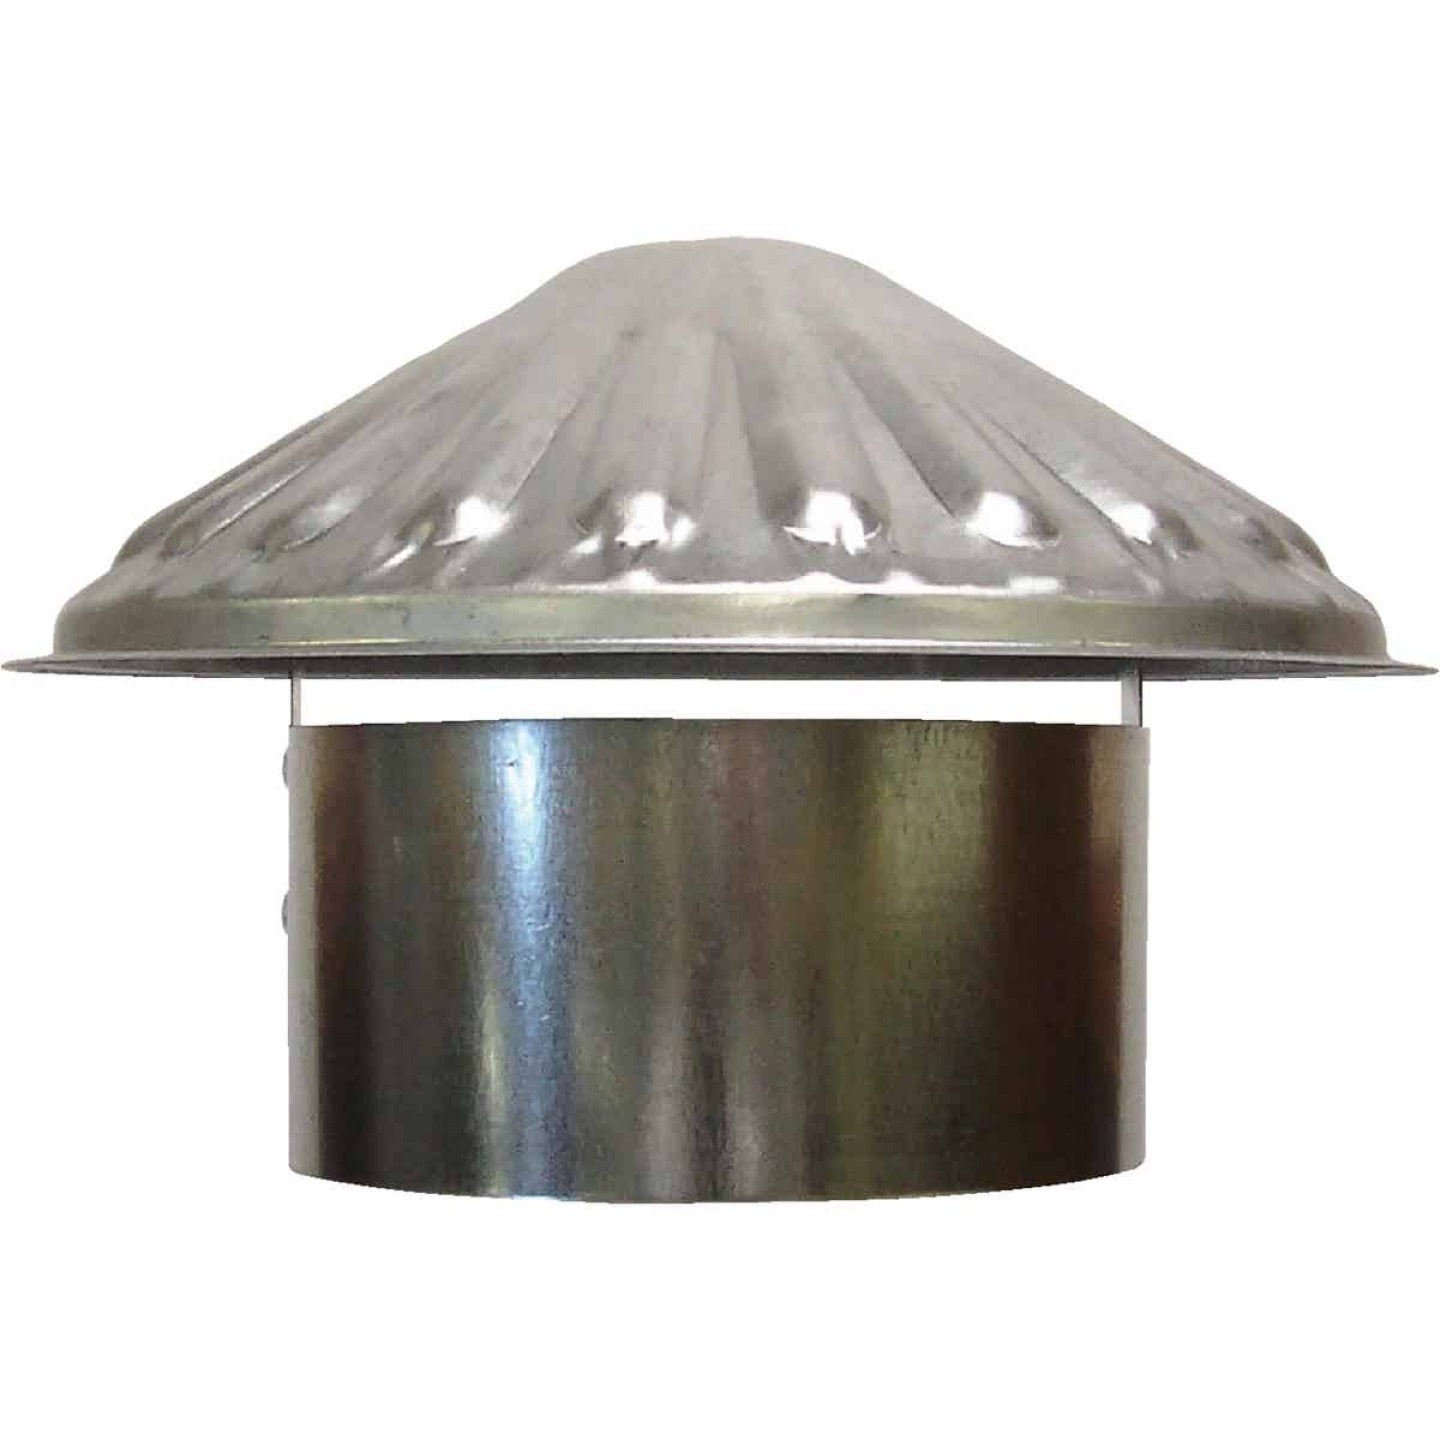 S & K Galvanized Steel 5 In. x 9-1/2 In. Vent Pipe Cap Image 1